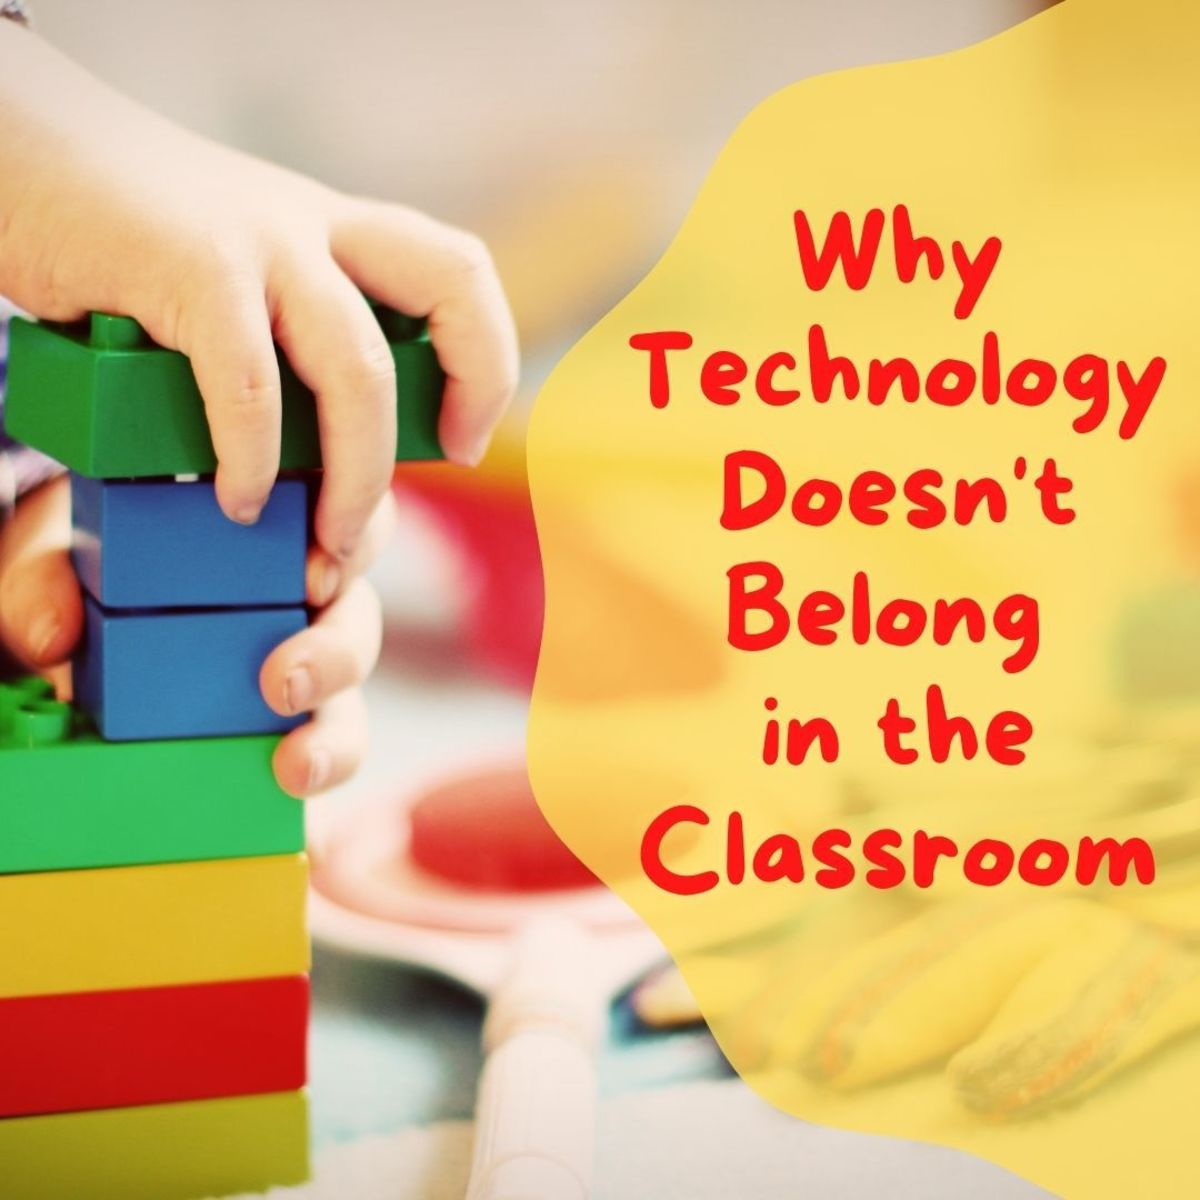 Why technology shouldn't be allowed in modern-day classrooms